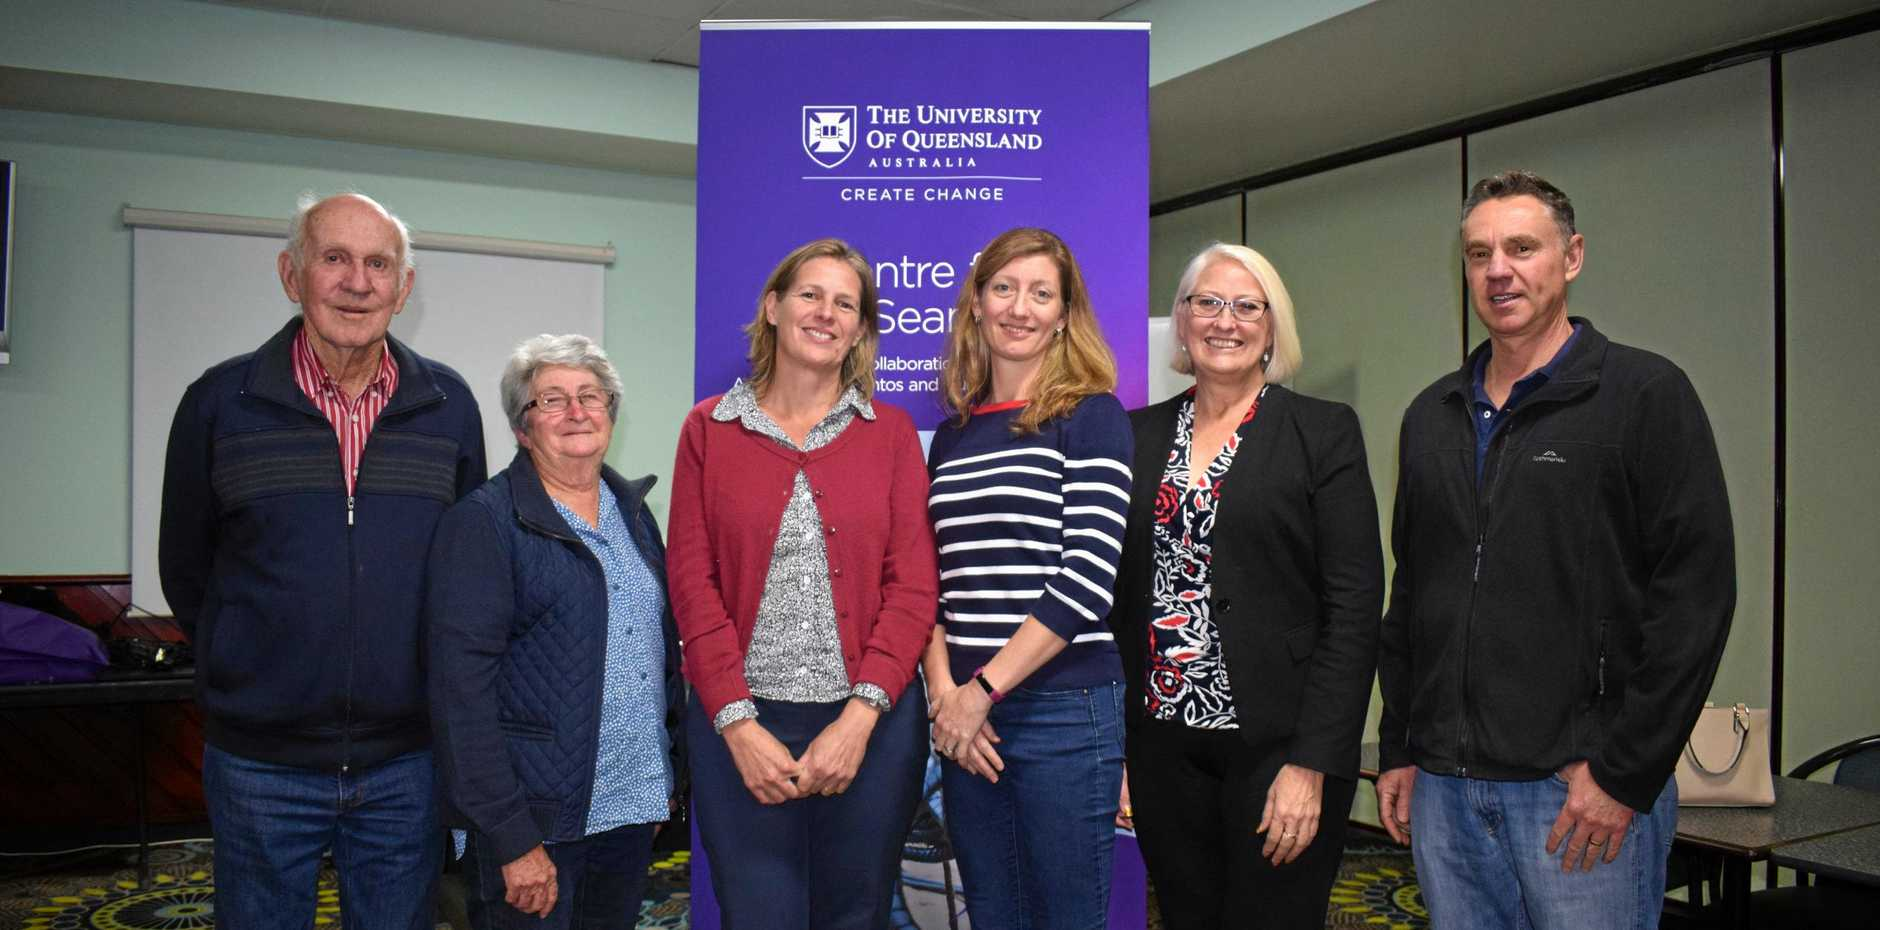 RESEARCH: Harold and Beryl Rennick, Dr Kathy Witt, Prof Nicole Gillespie, Cr Kaye Maguire, and Greg West at the 'What happens when CSG comes to town?' workshop.